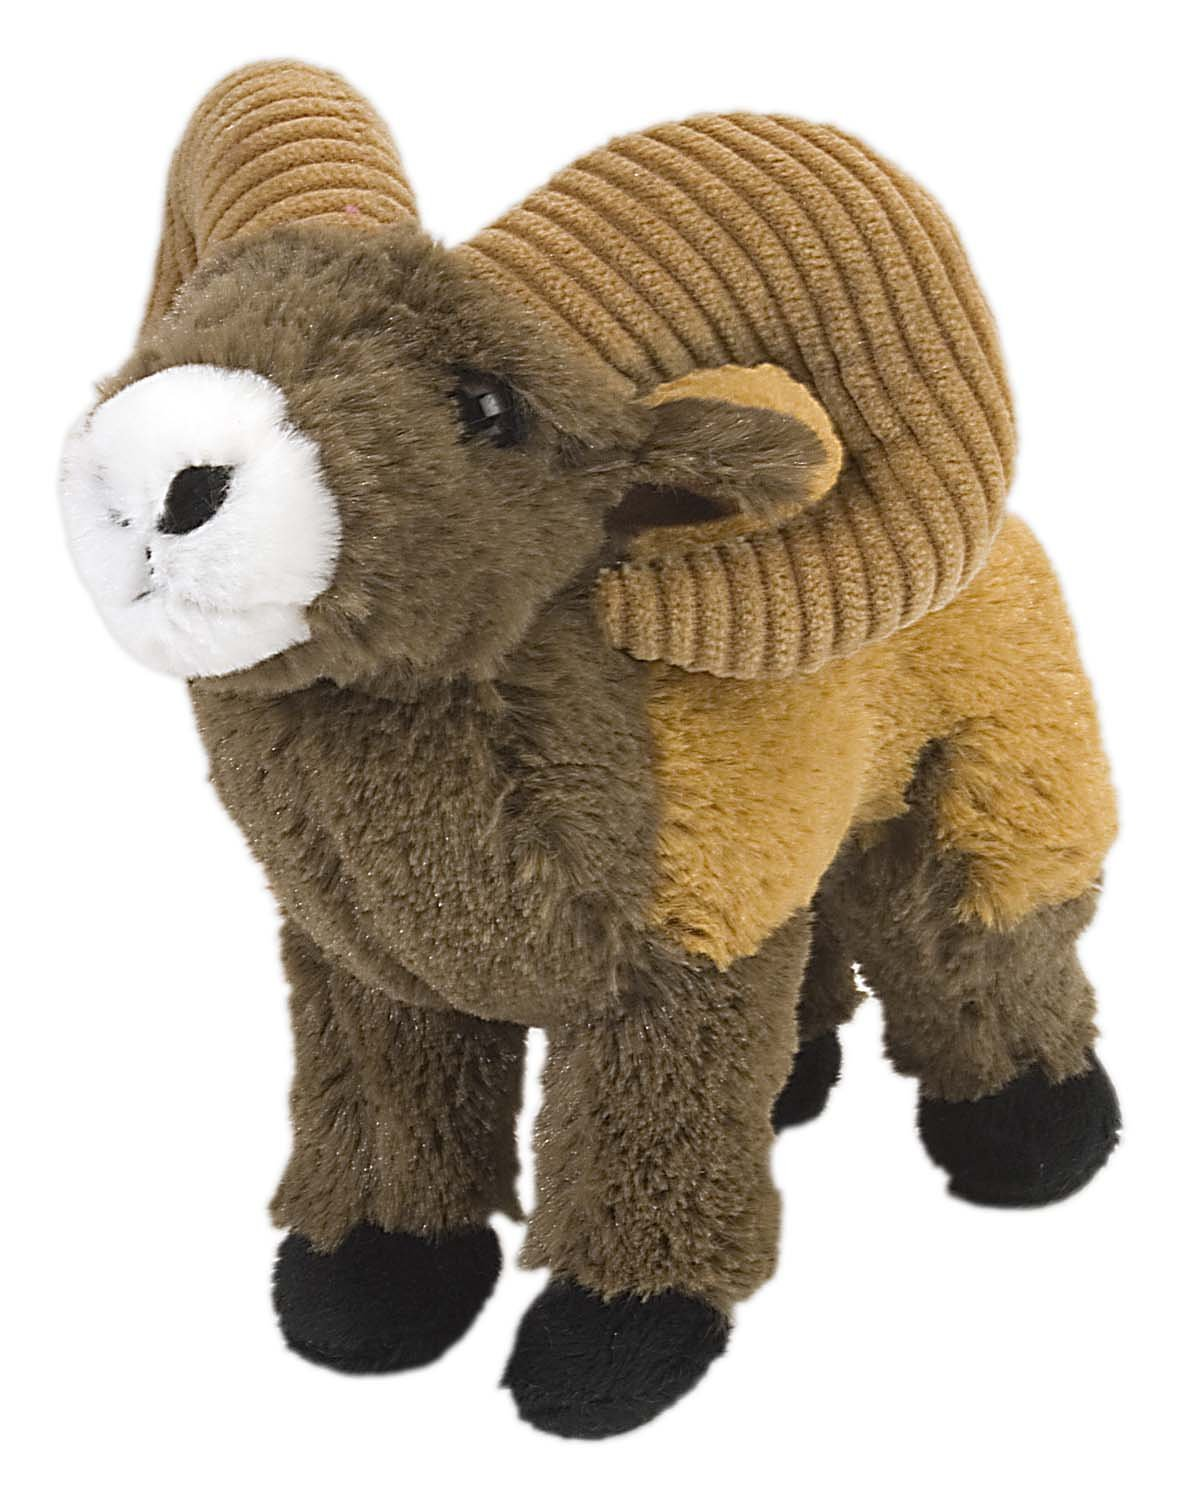 Stuffed Animal: CK Big Horn Sheep 8""